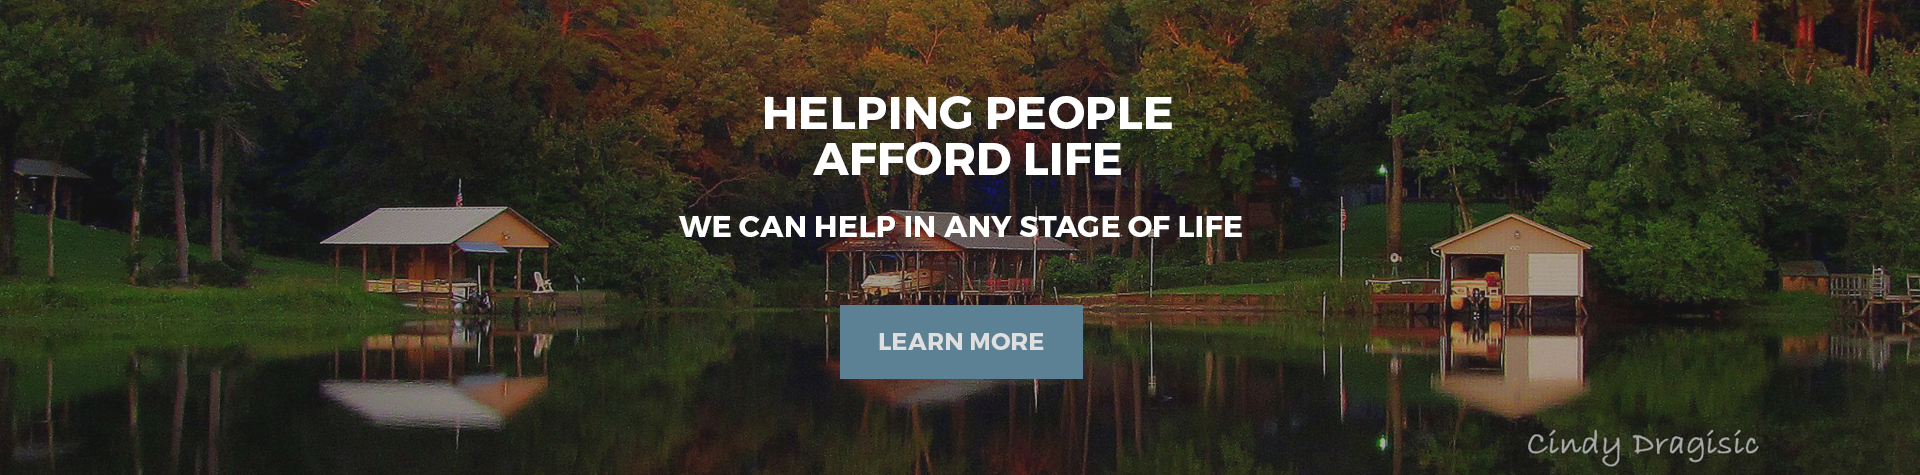 Helping People Afford Life